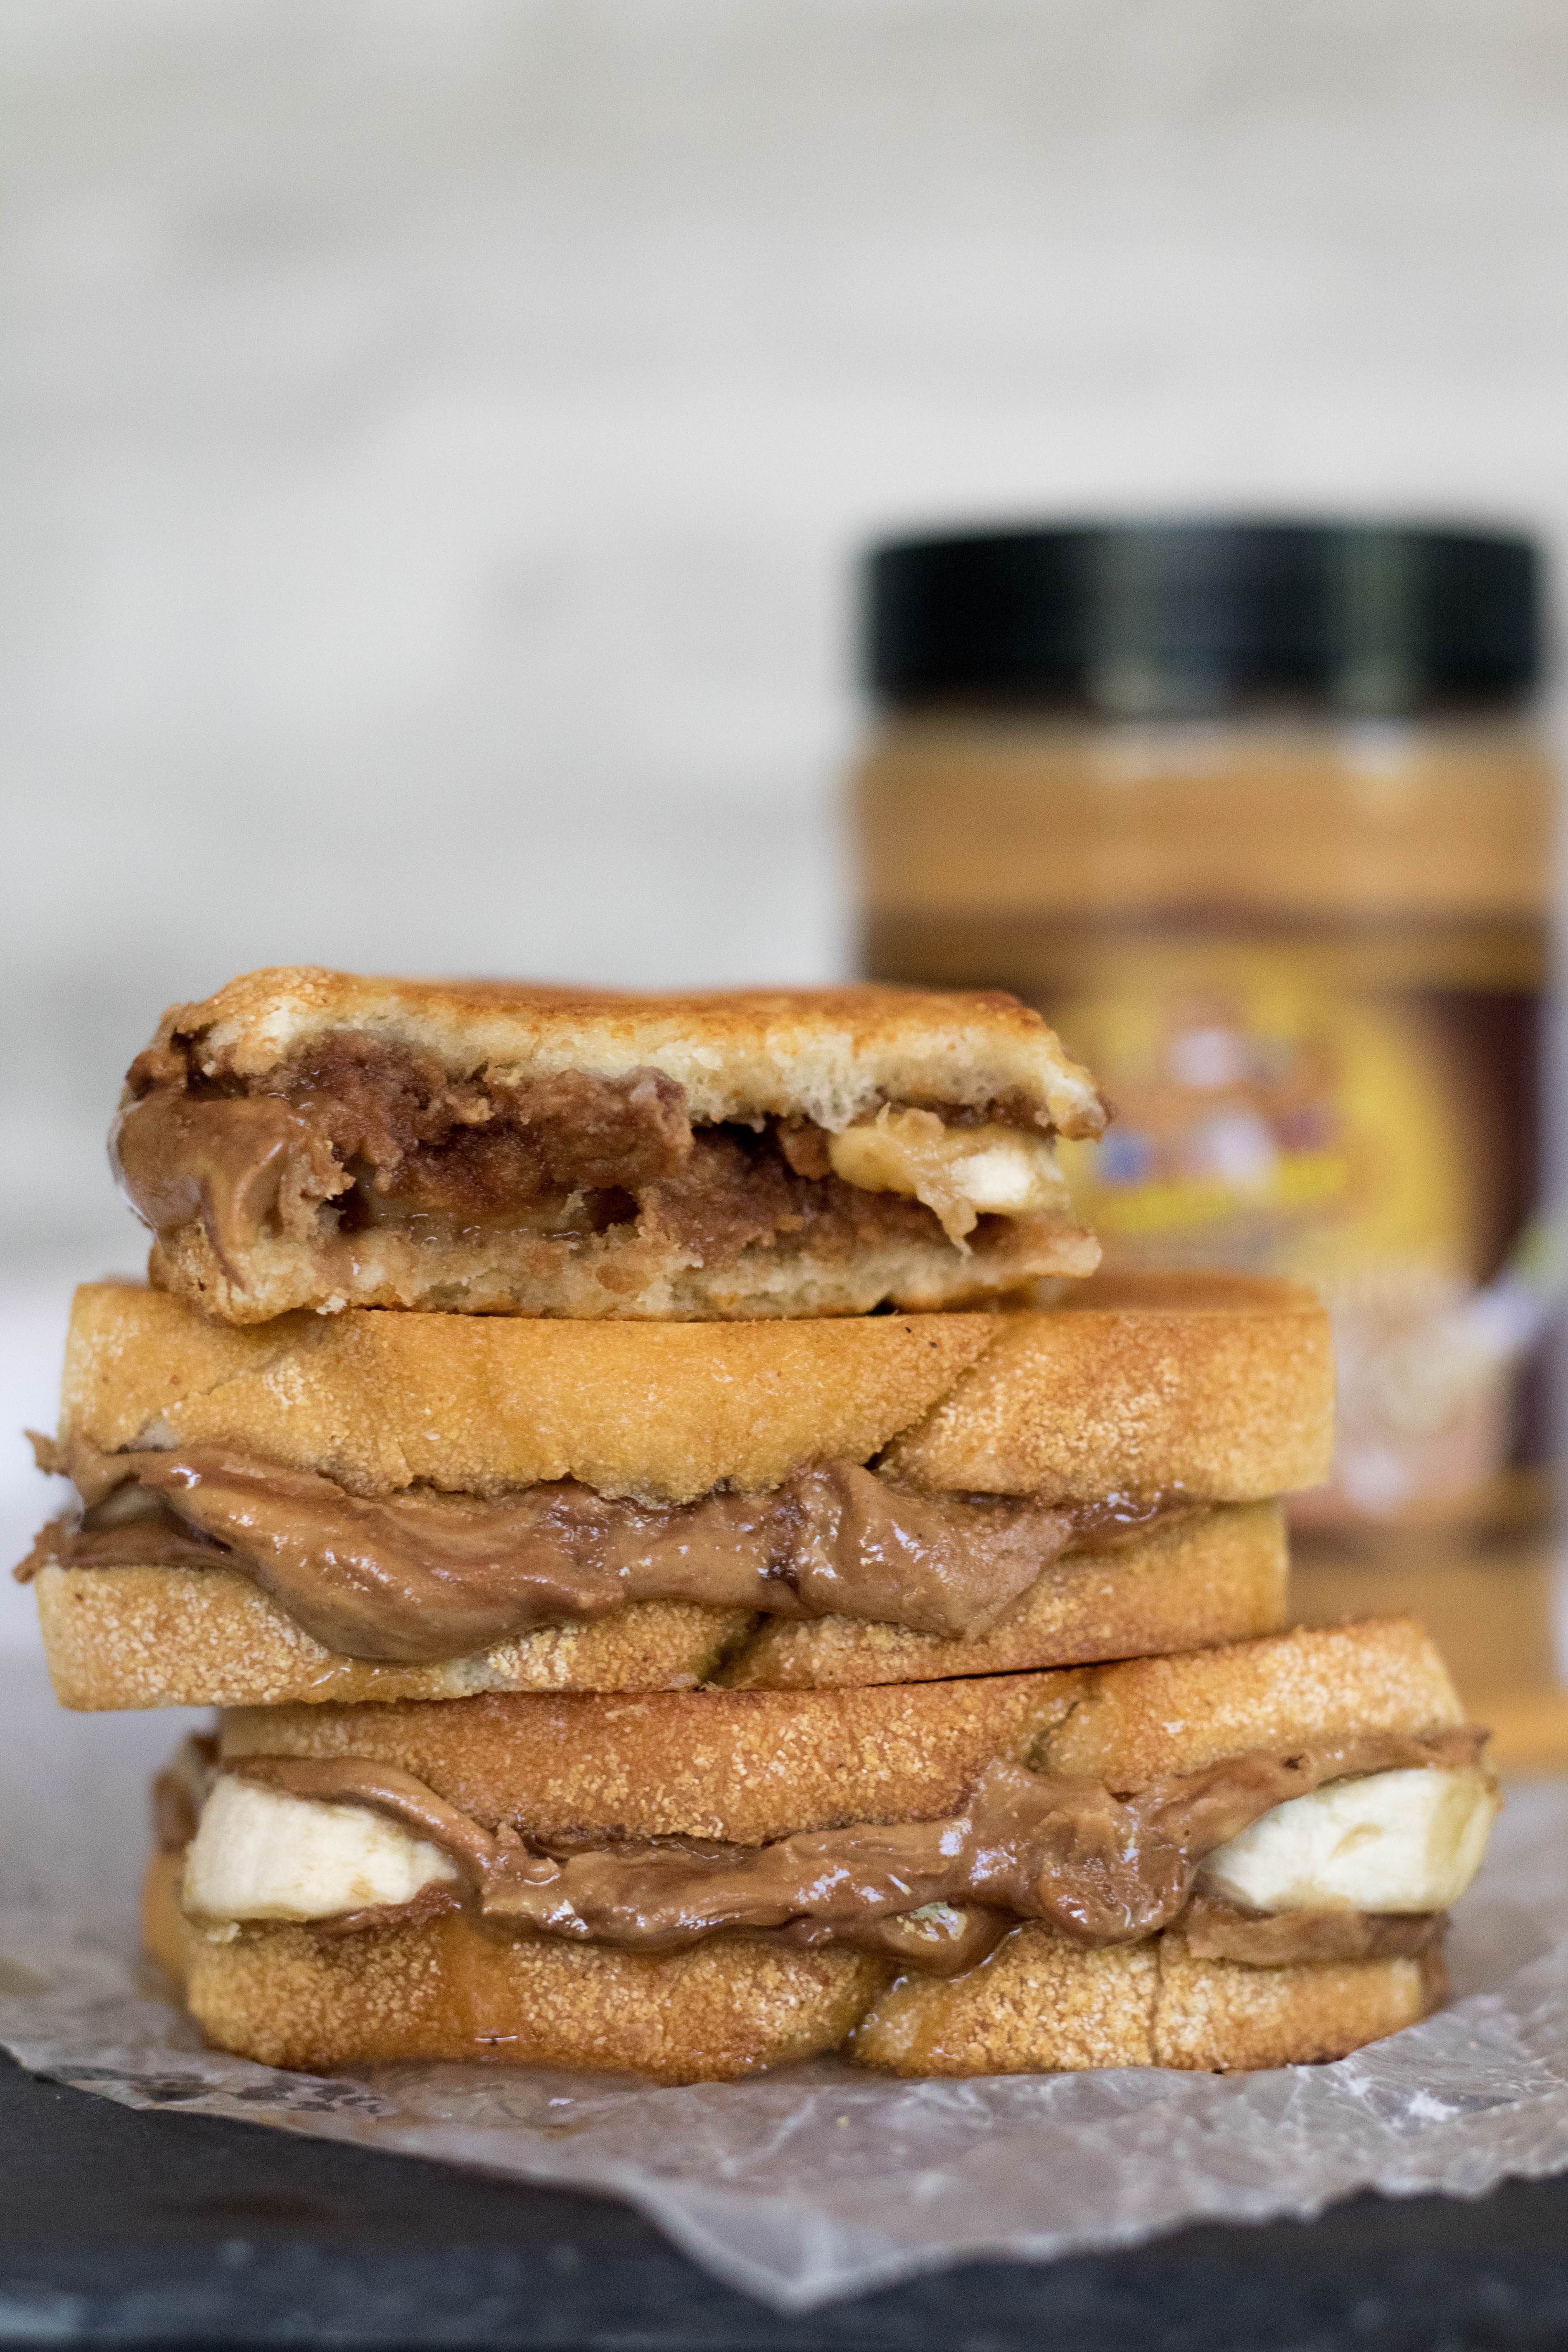 Grilled peanut butter banana sandwich cut in half to show the inside